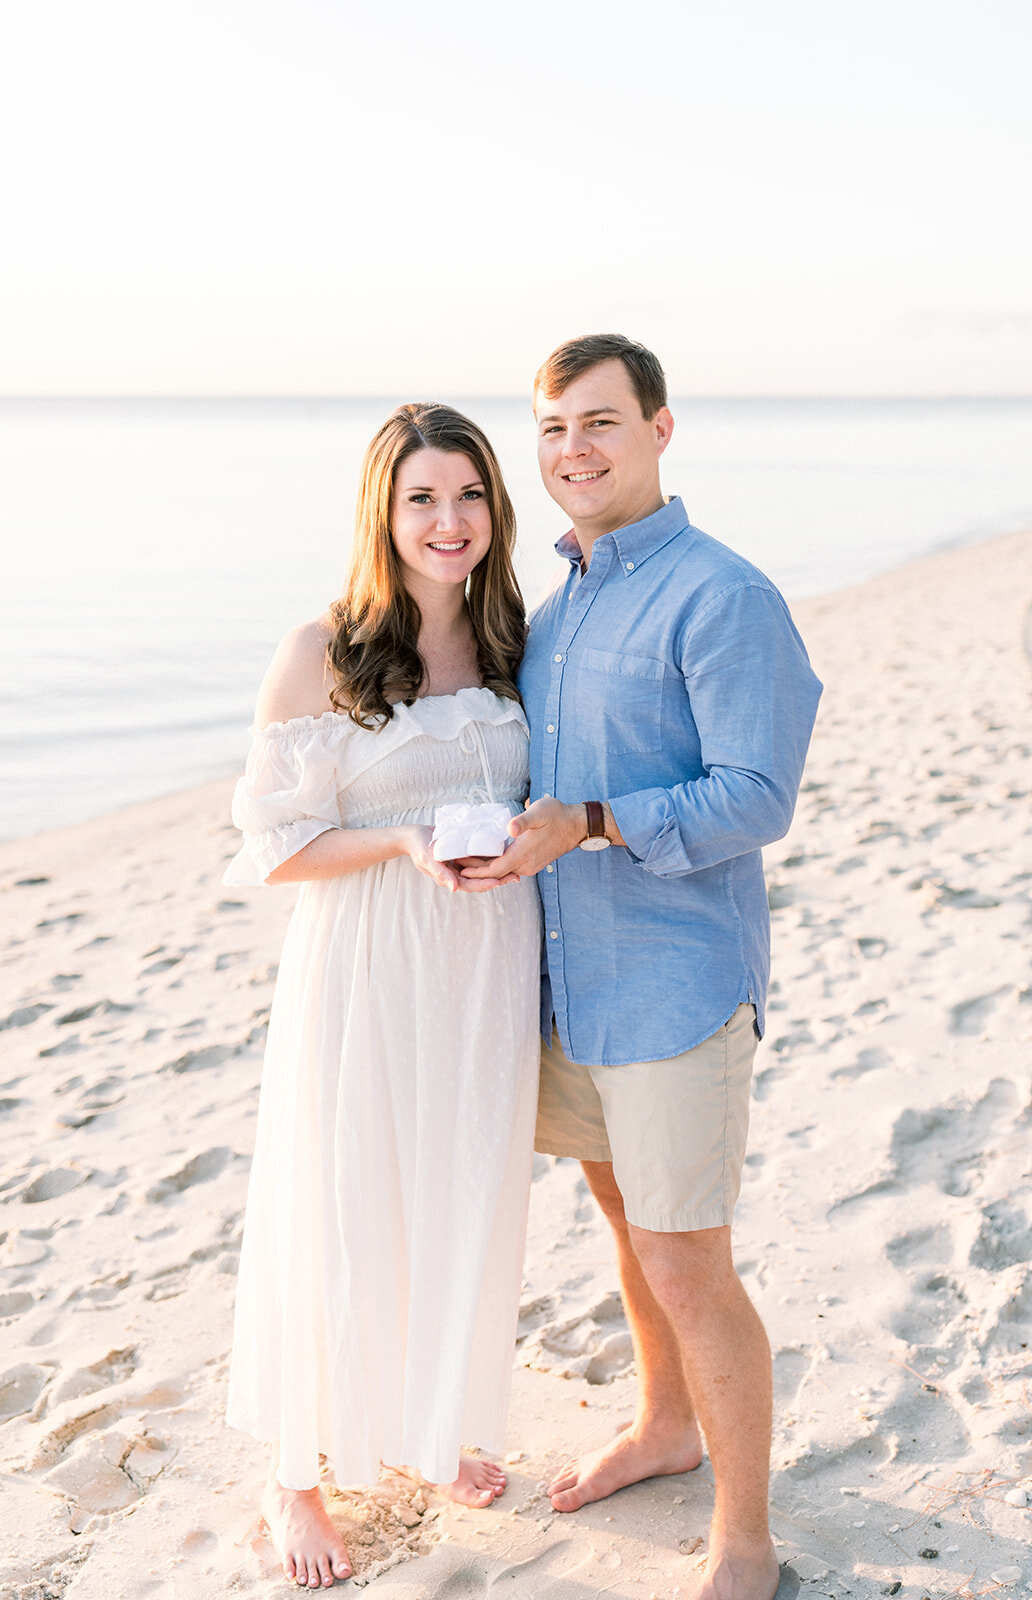 mallorie-reynolds-maternity-naples-beach-photos-1010